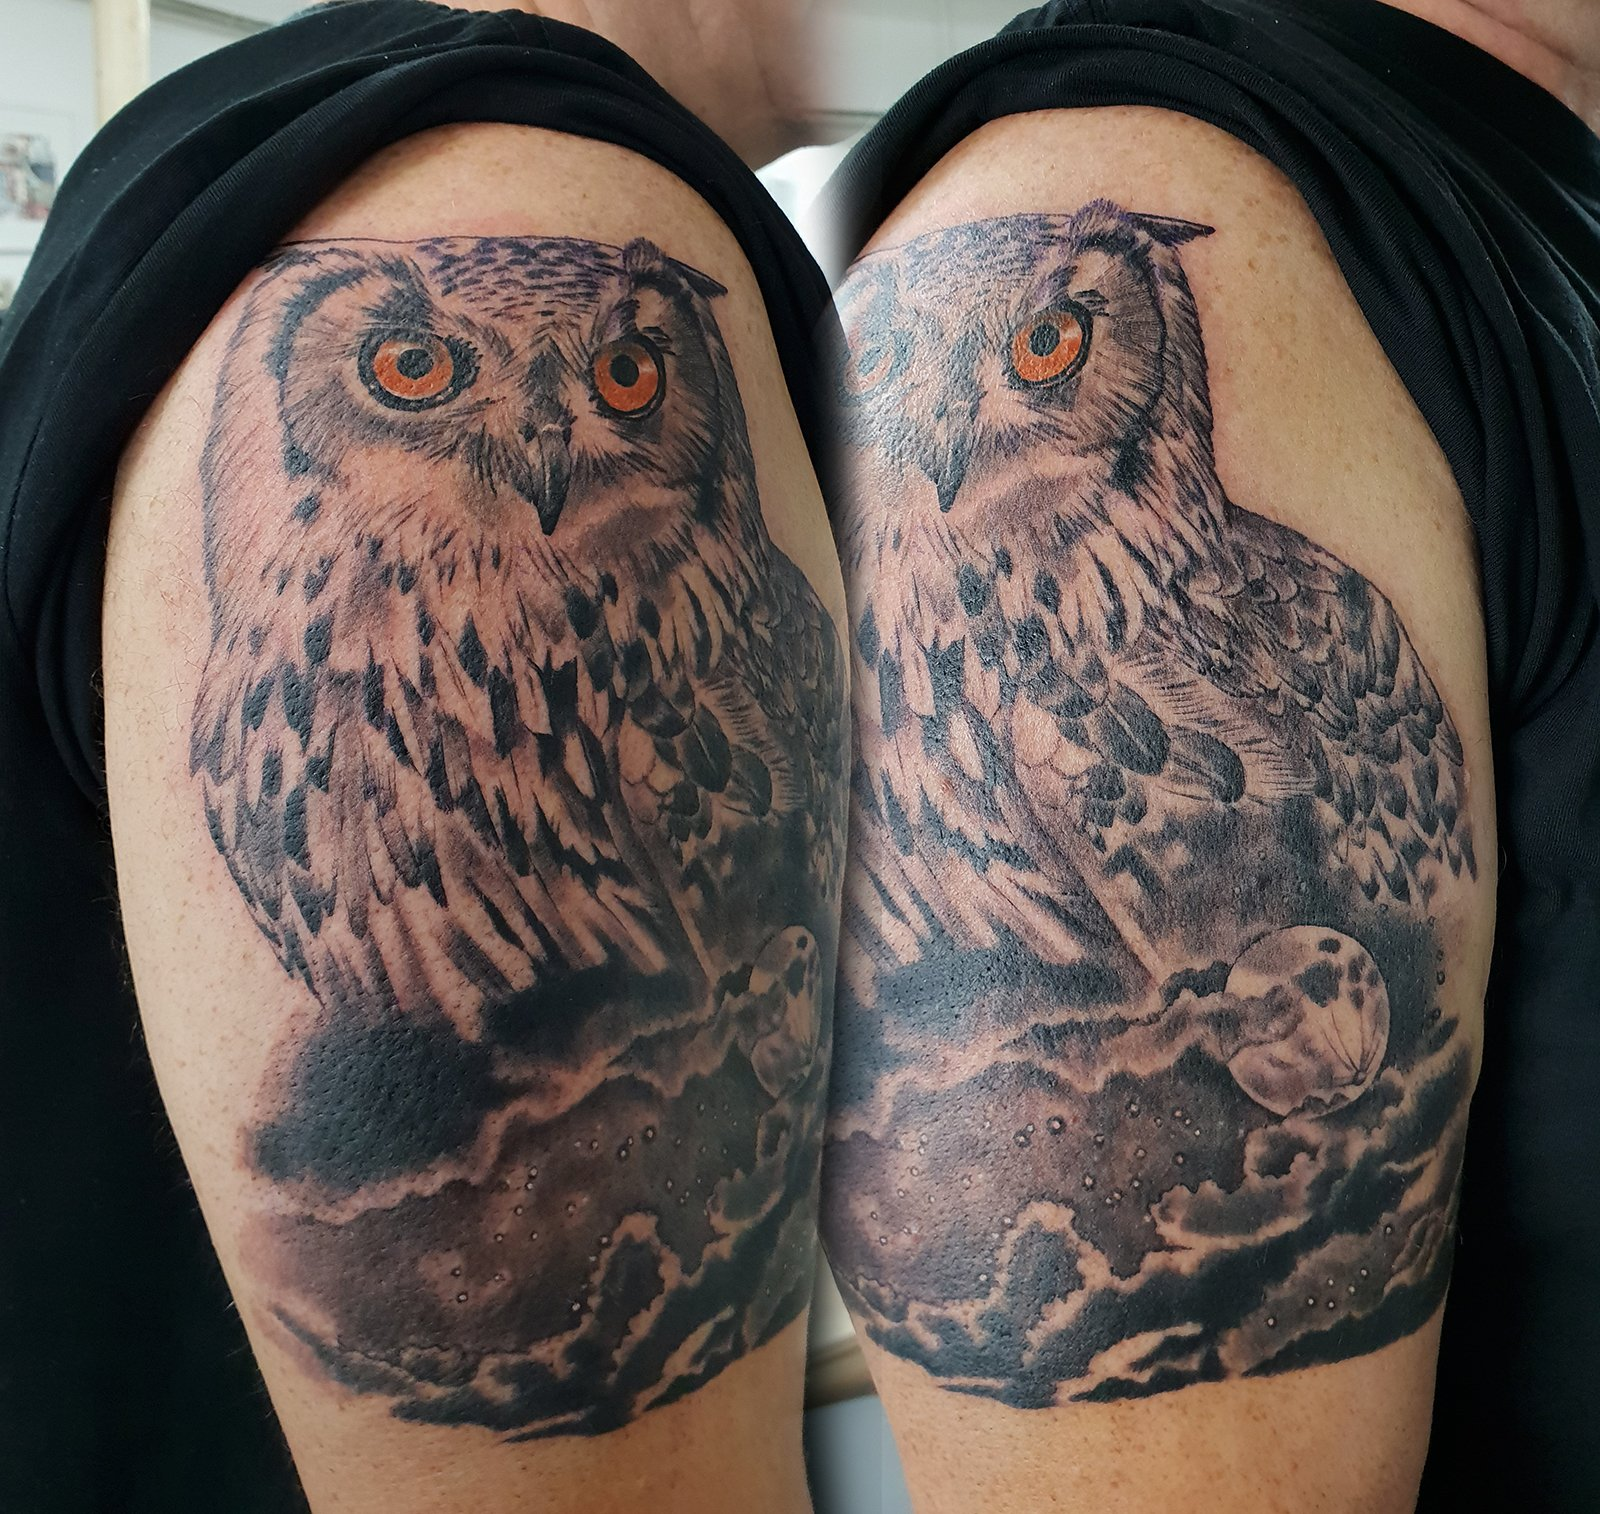 large owl half sleeve tattoo realism bird tattoo manchester